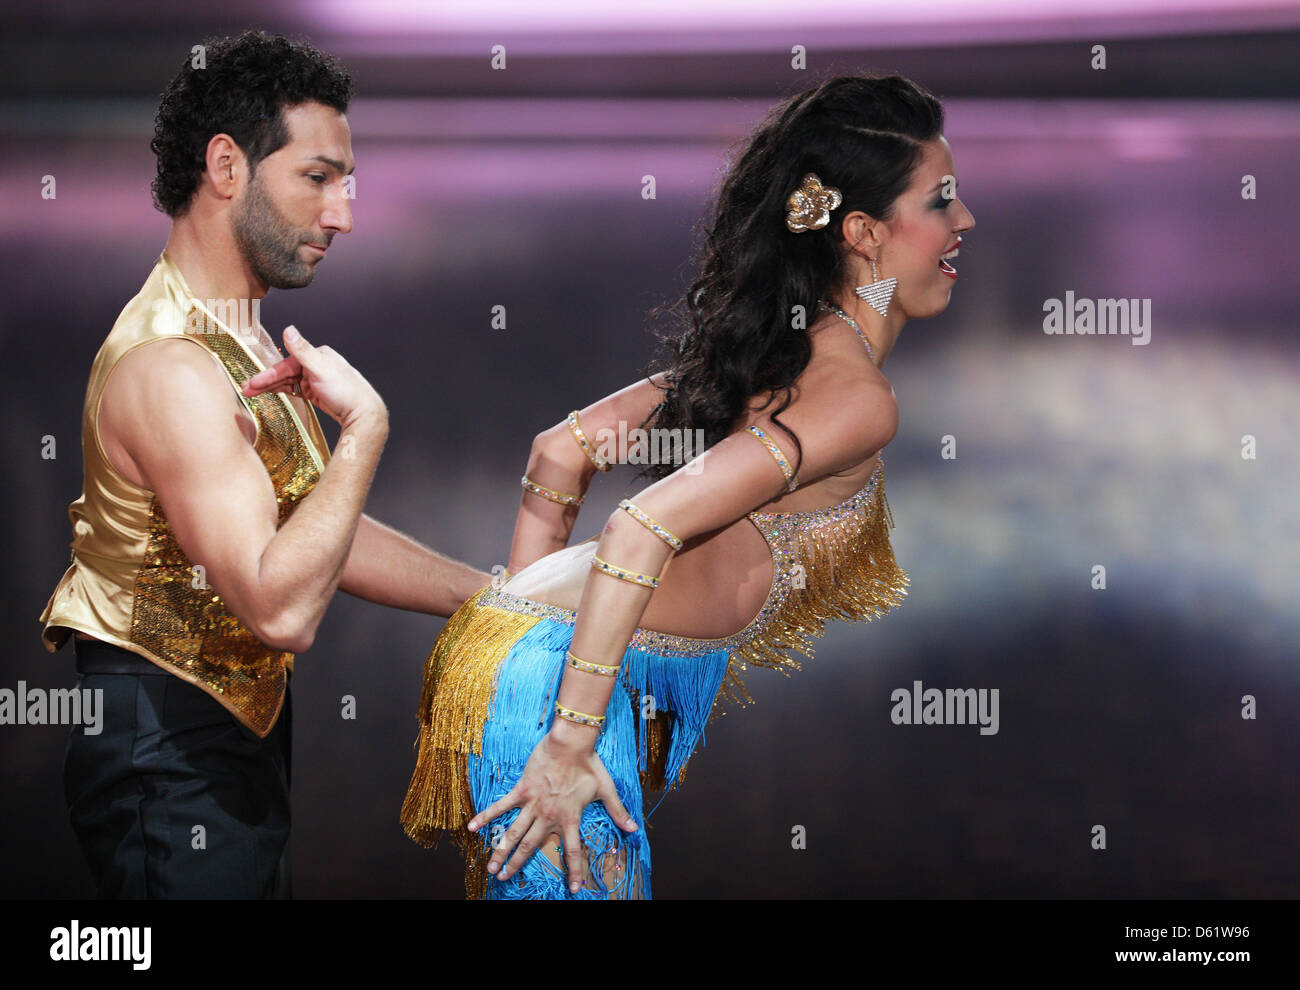 model rebecca mir and dancer massimo sinato perform on stage during rtl television dance show let s dance in cologne germany 02 may 2012